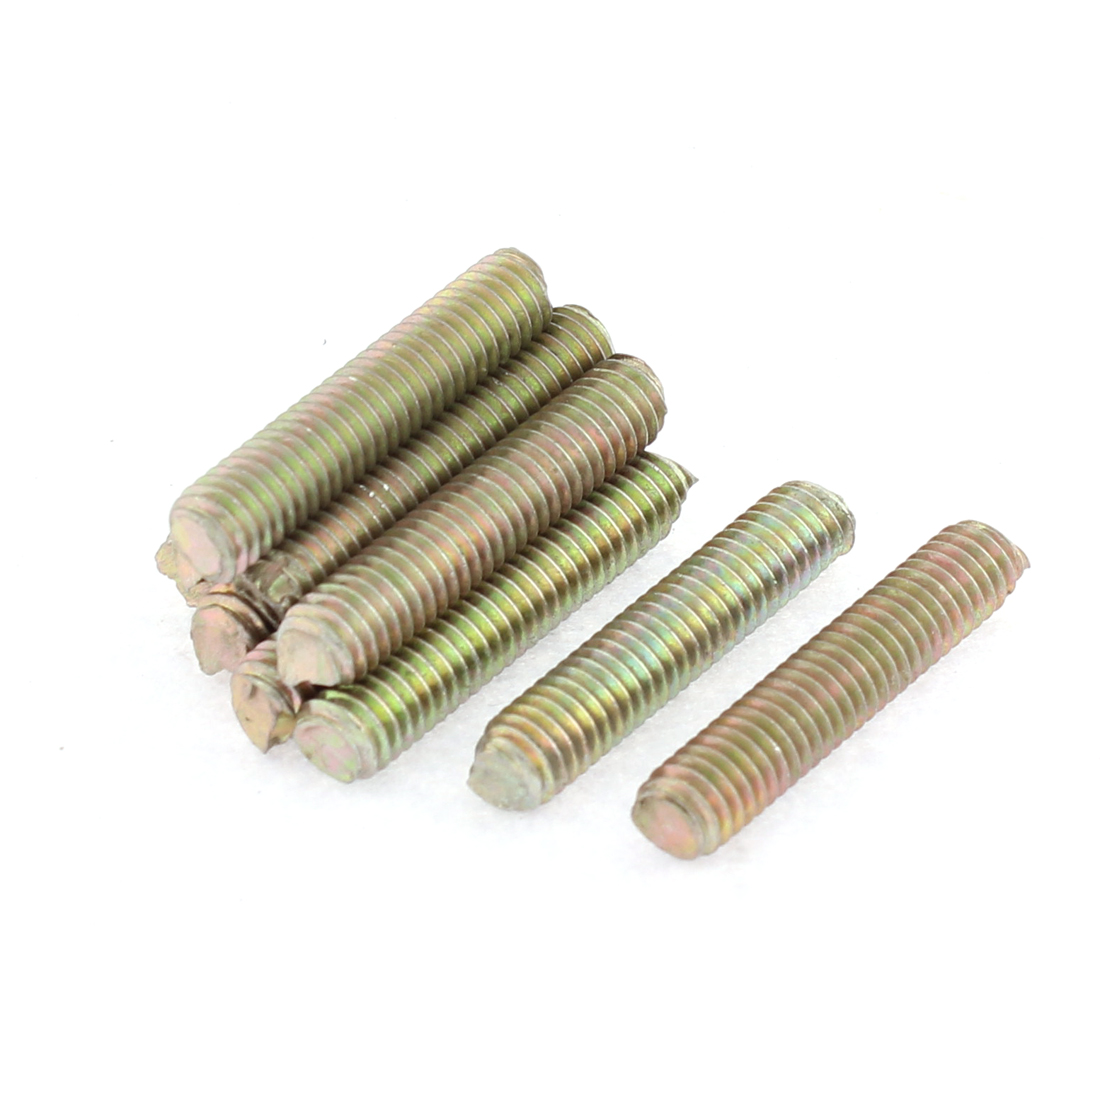 10Pcs 1mm Pitch M6 x 30mm Male Full Thread Dual Head Threaded Rod Bar Screw Bolt Fastener Bronze Tone